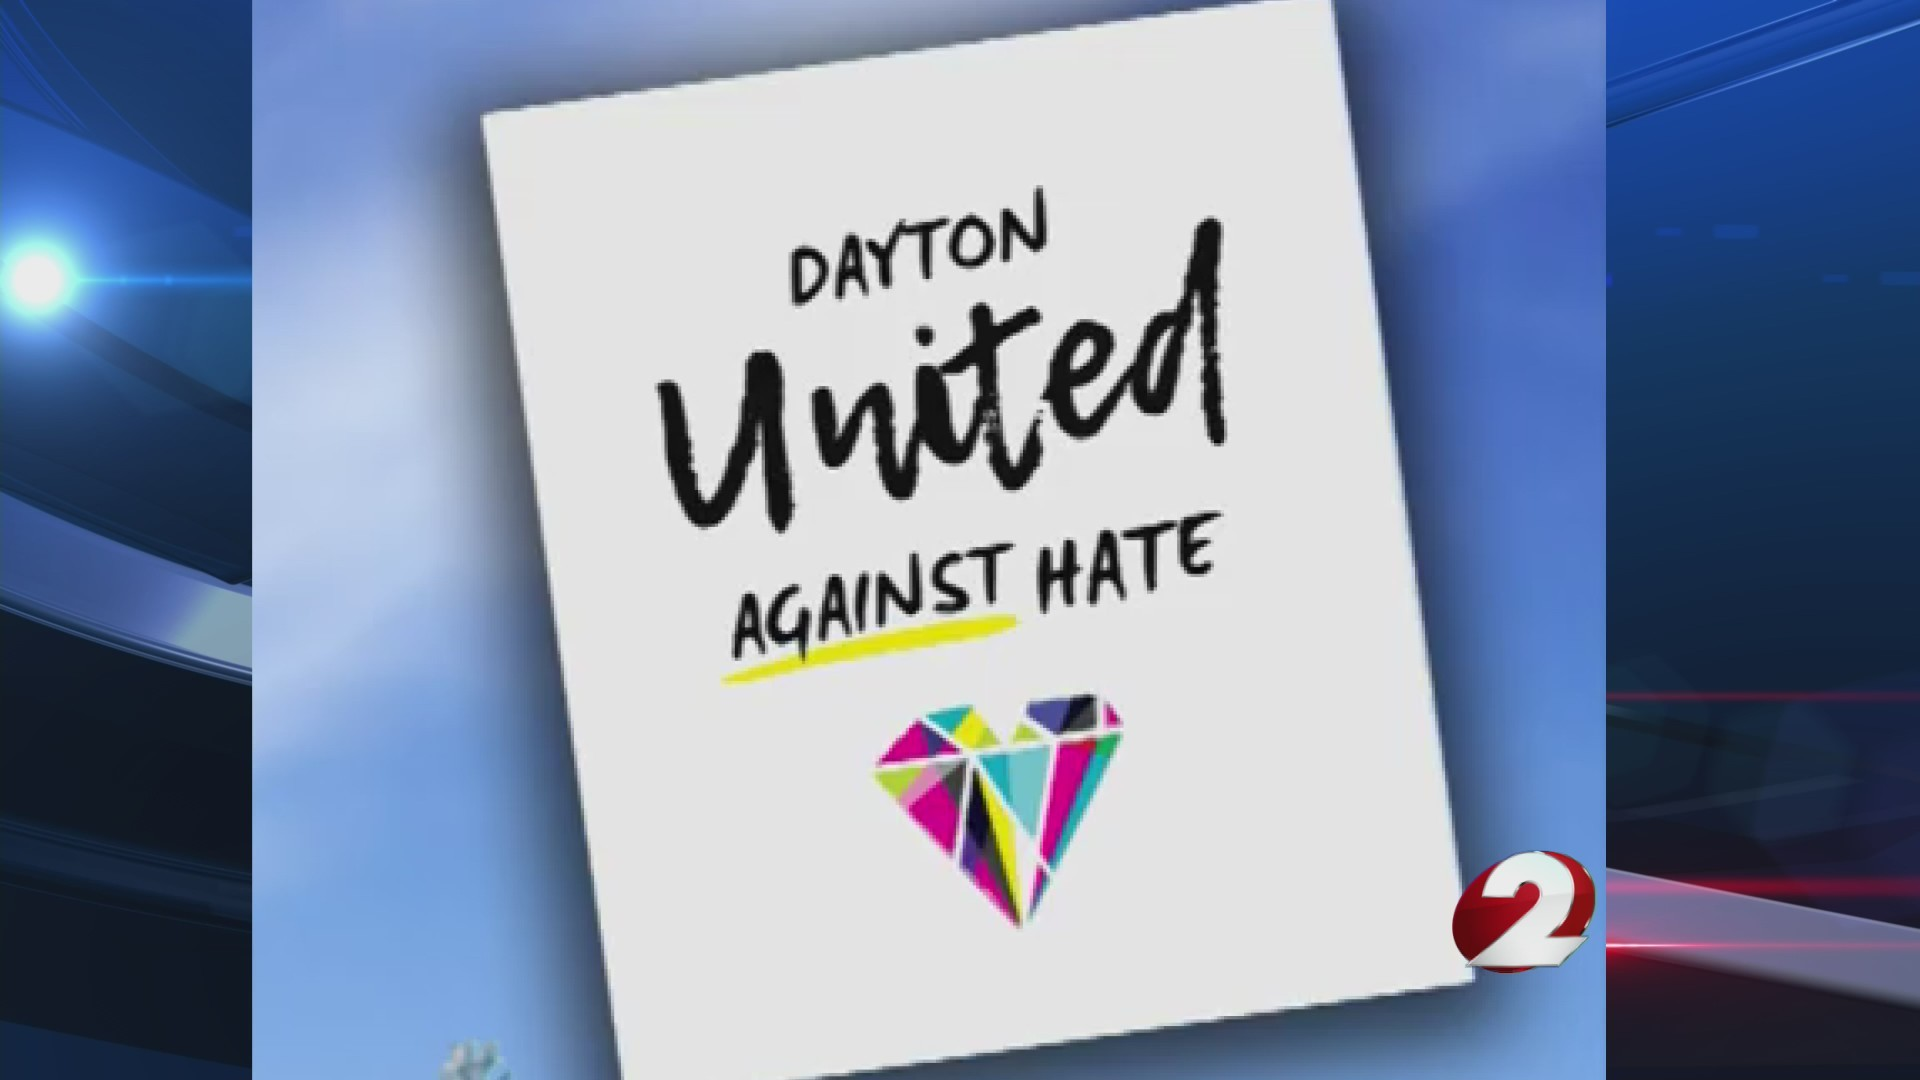 Mayor asks public to avoid downtown Dayton day of hate rally